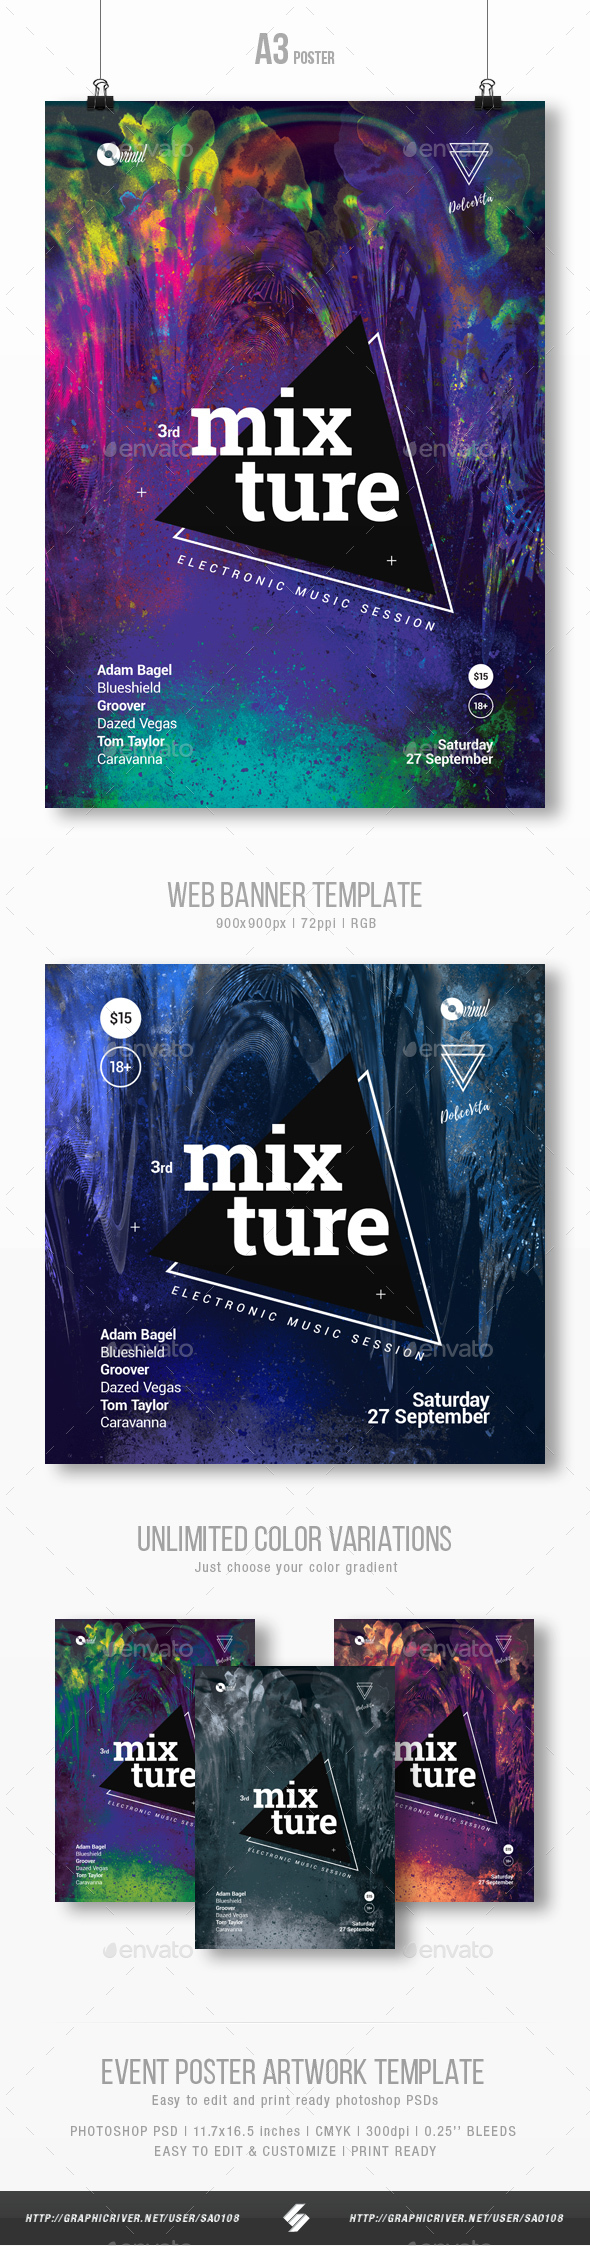 Mixture 3 - Electronic Music Party Flyer / Poster Template A3 - Clubs & Parties Events